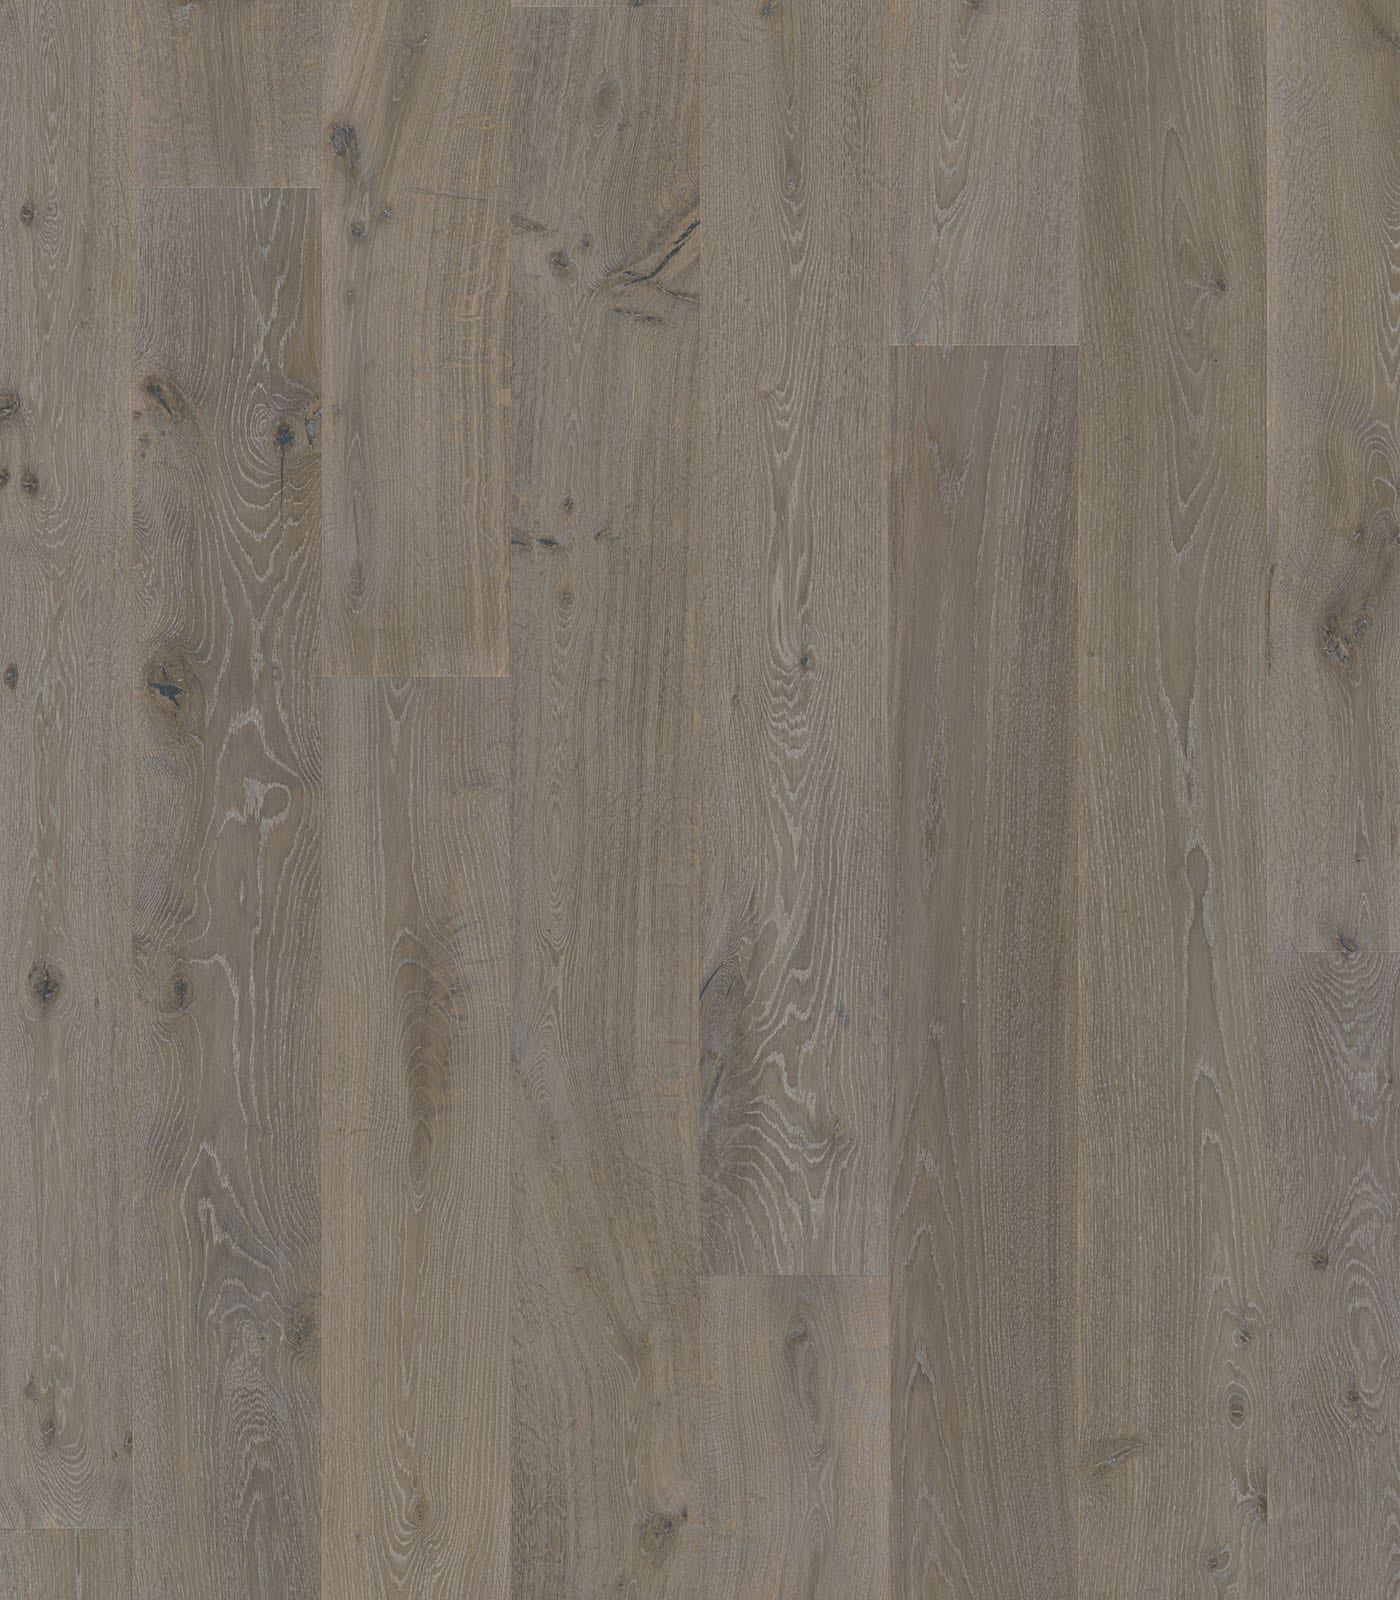 Valparaiso-Lifestyle Collection-European Oak Floors-flat